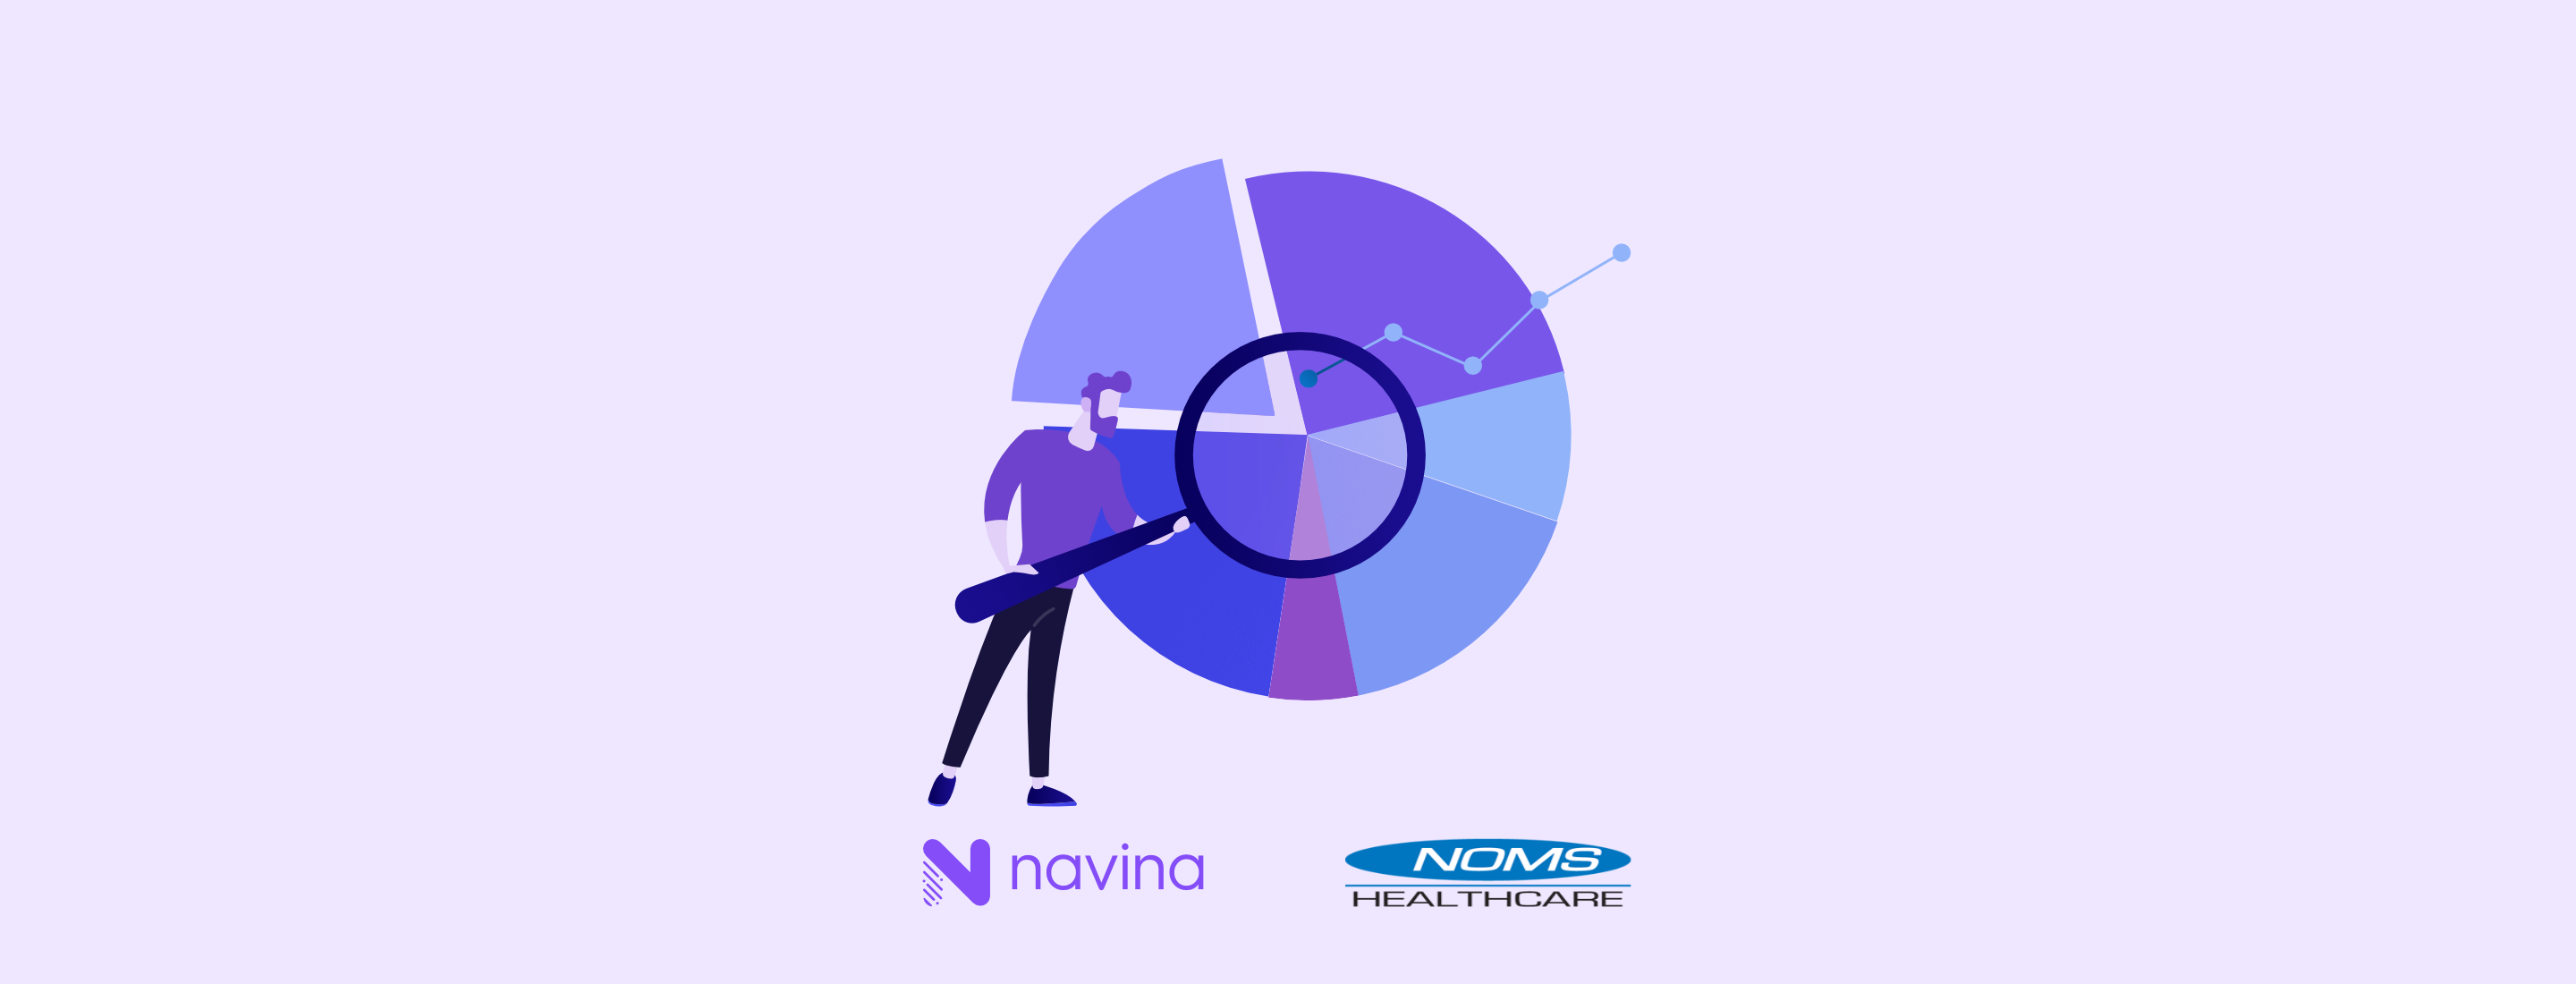 Navina Announces Milestone Results of its AI-Powered Platform with NOMS Healthcare - After Just Three Months of Deployment